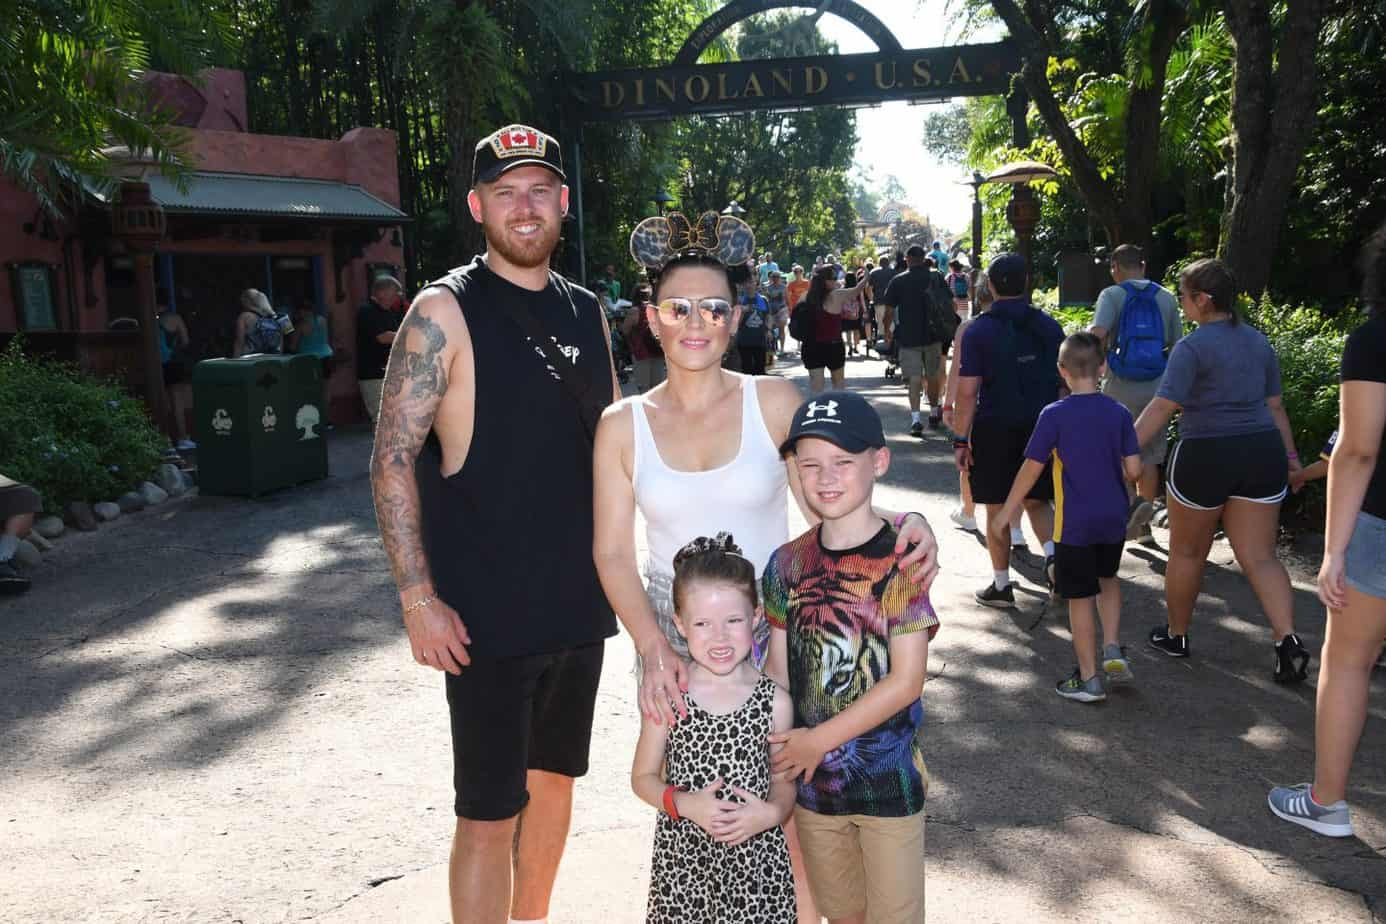 Family photo outside Dinoland in Animal Kingdom